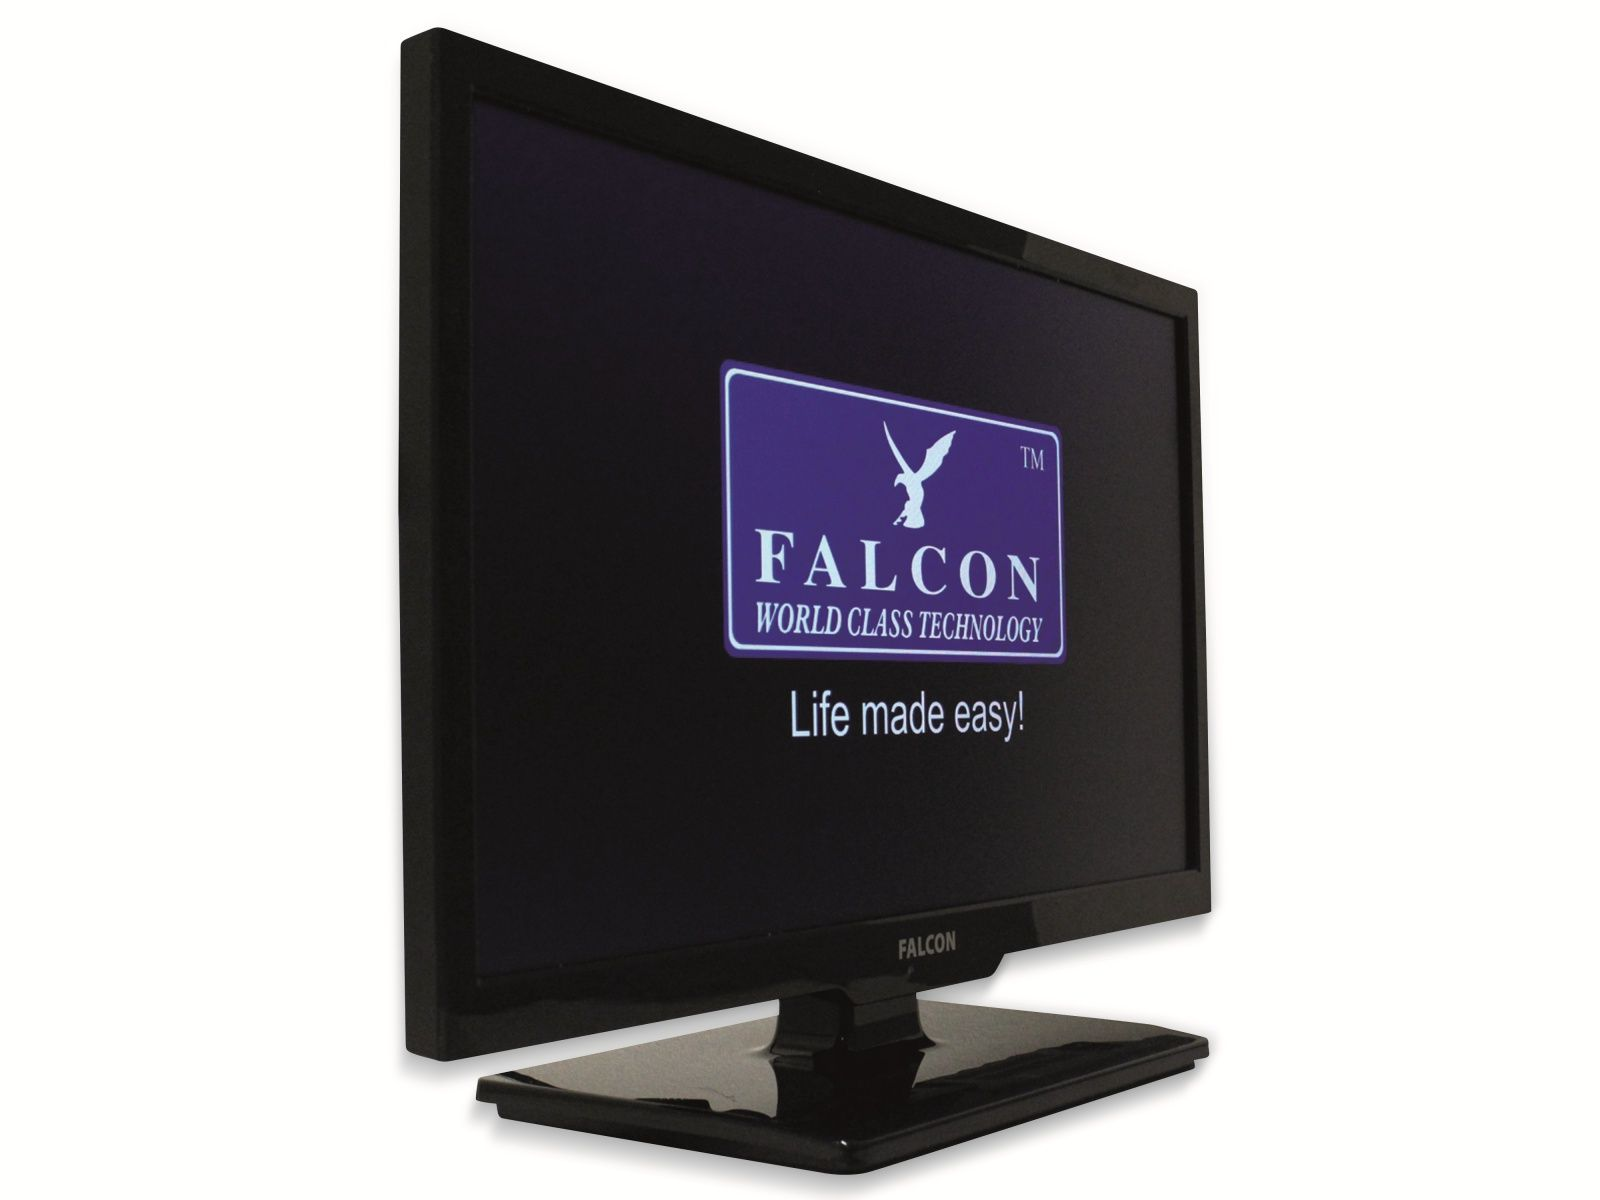 led tv falcon travel tv 19 48 cm